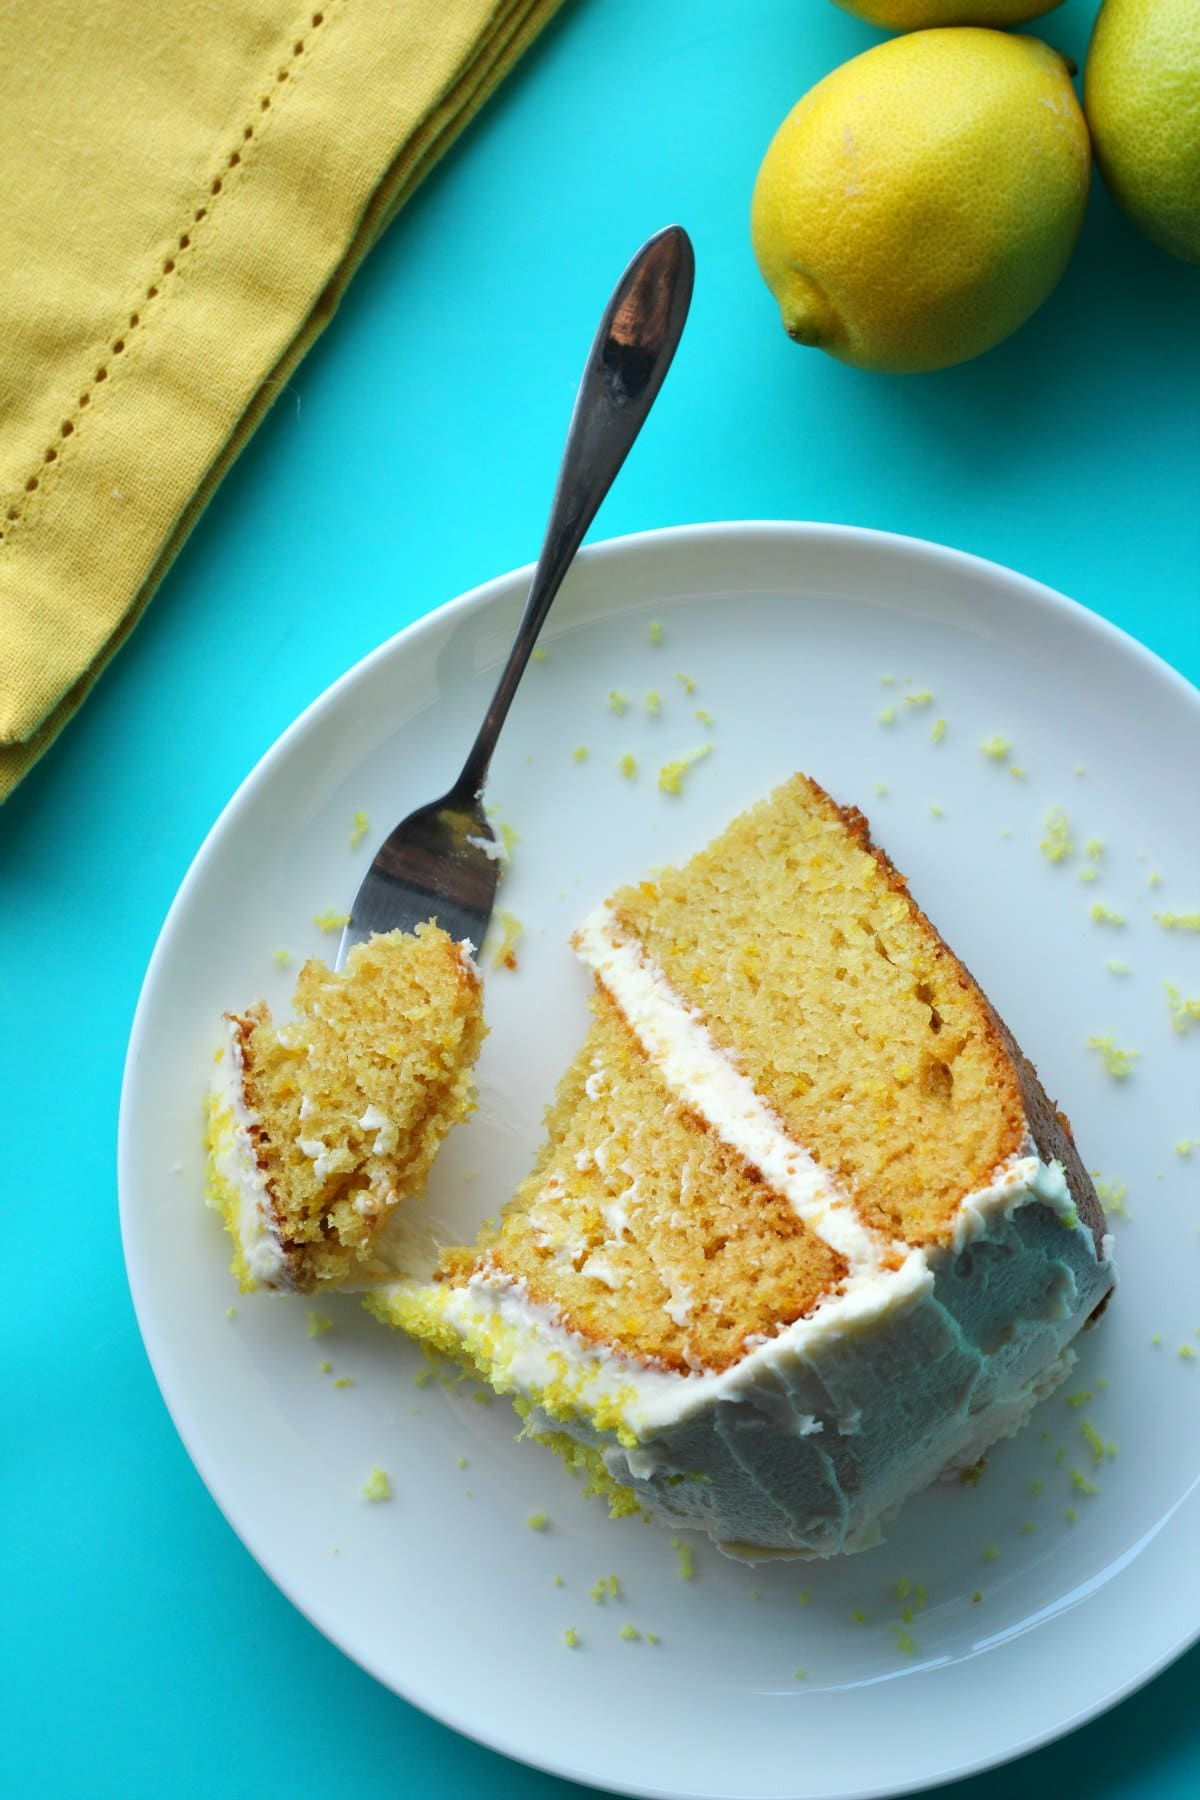 A slice of lemon cake on a white plate with a cake fork.